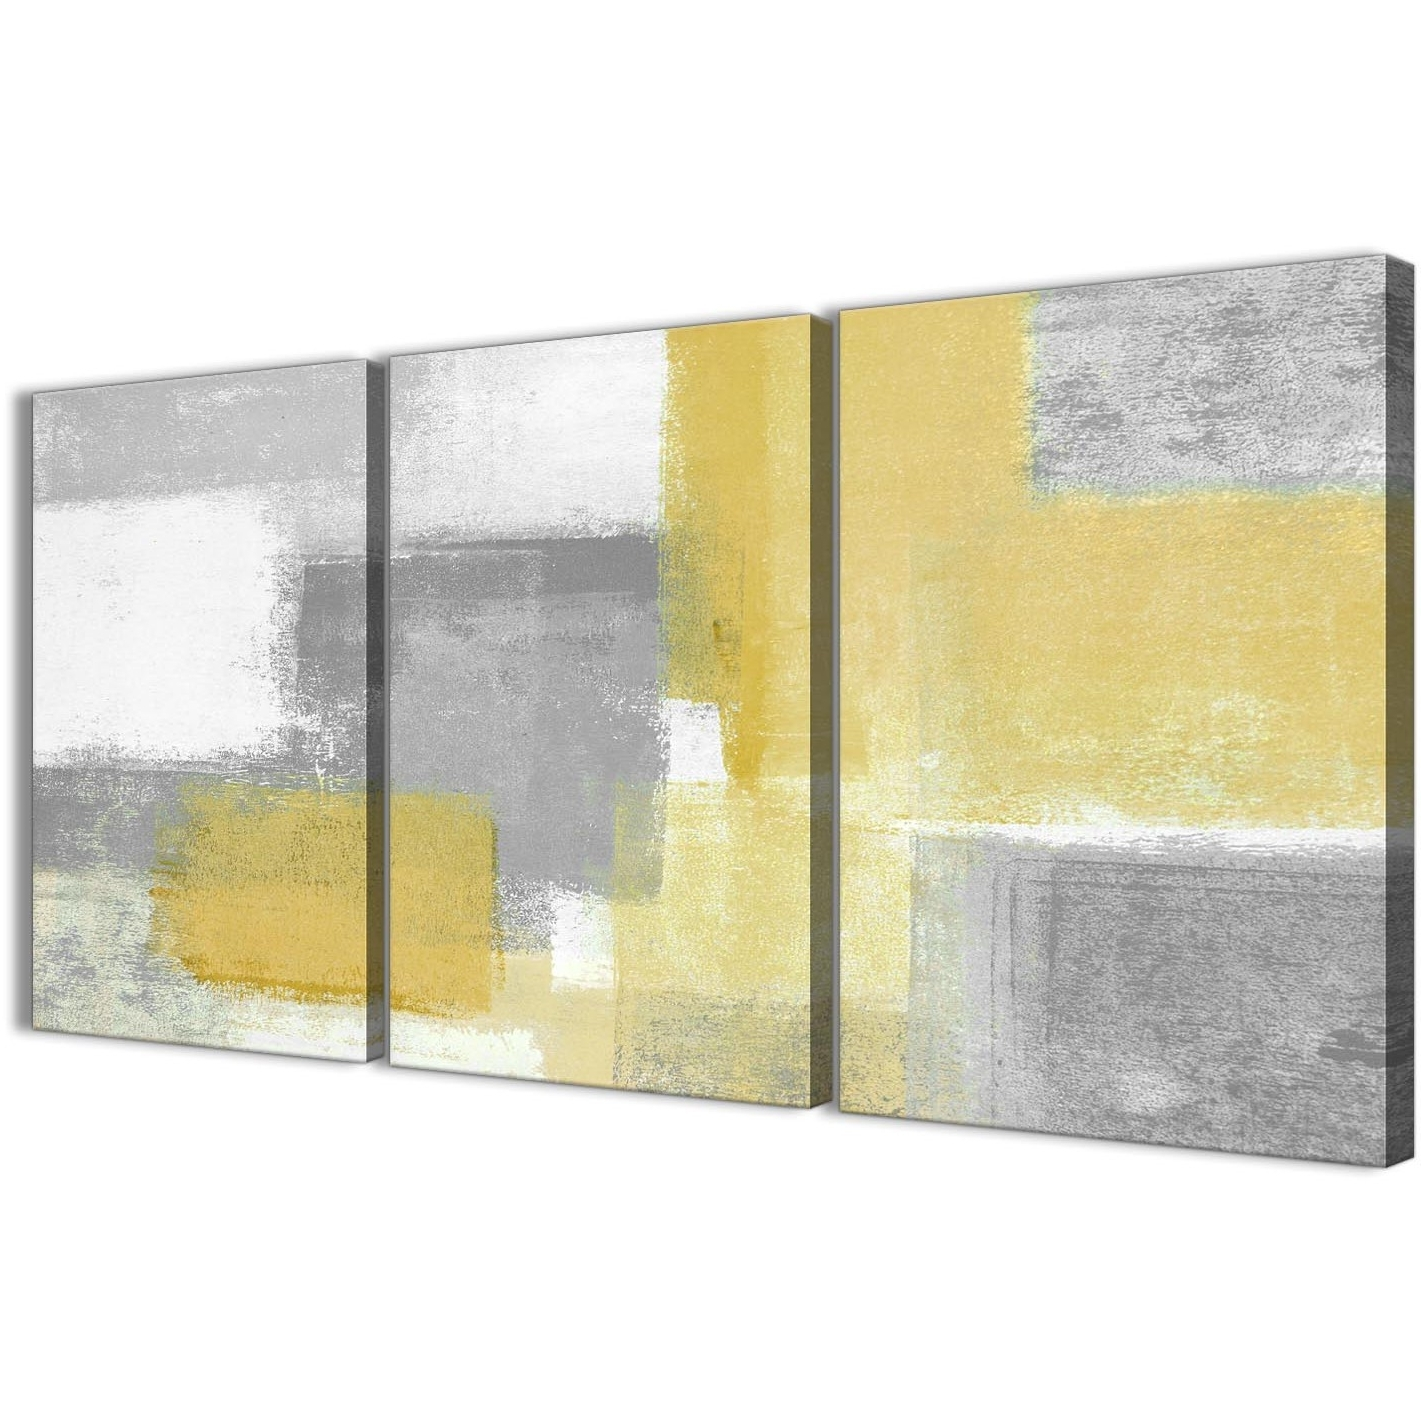 3 Panel Mustard Yellow Grey Kitchen Canvas Wall Art Decor – Abstract For Popular Canvas Wall Art (View 2 of 15)